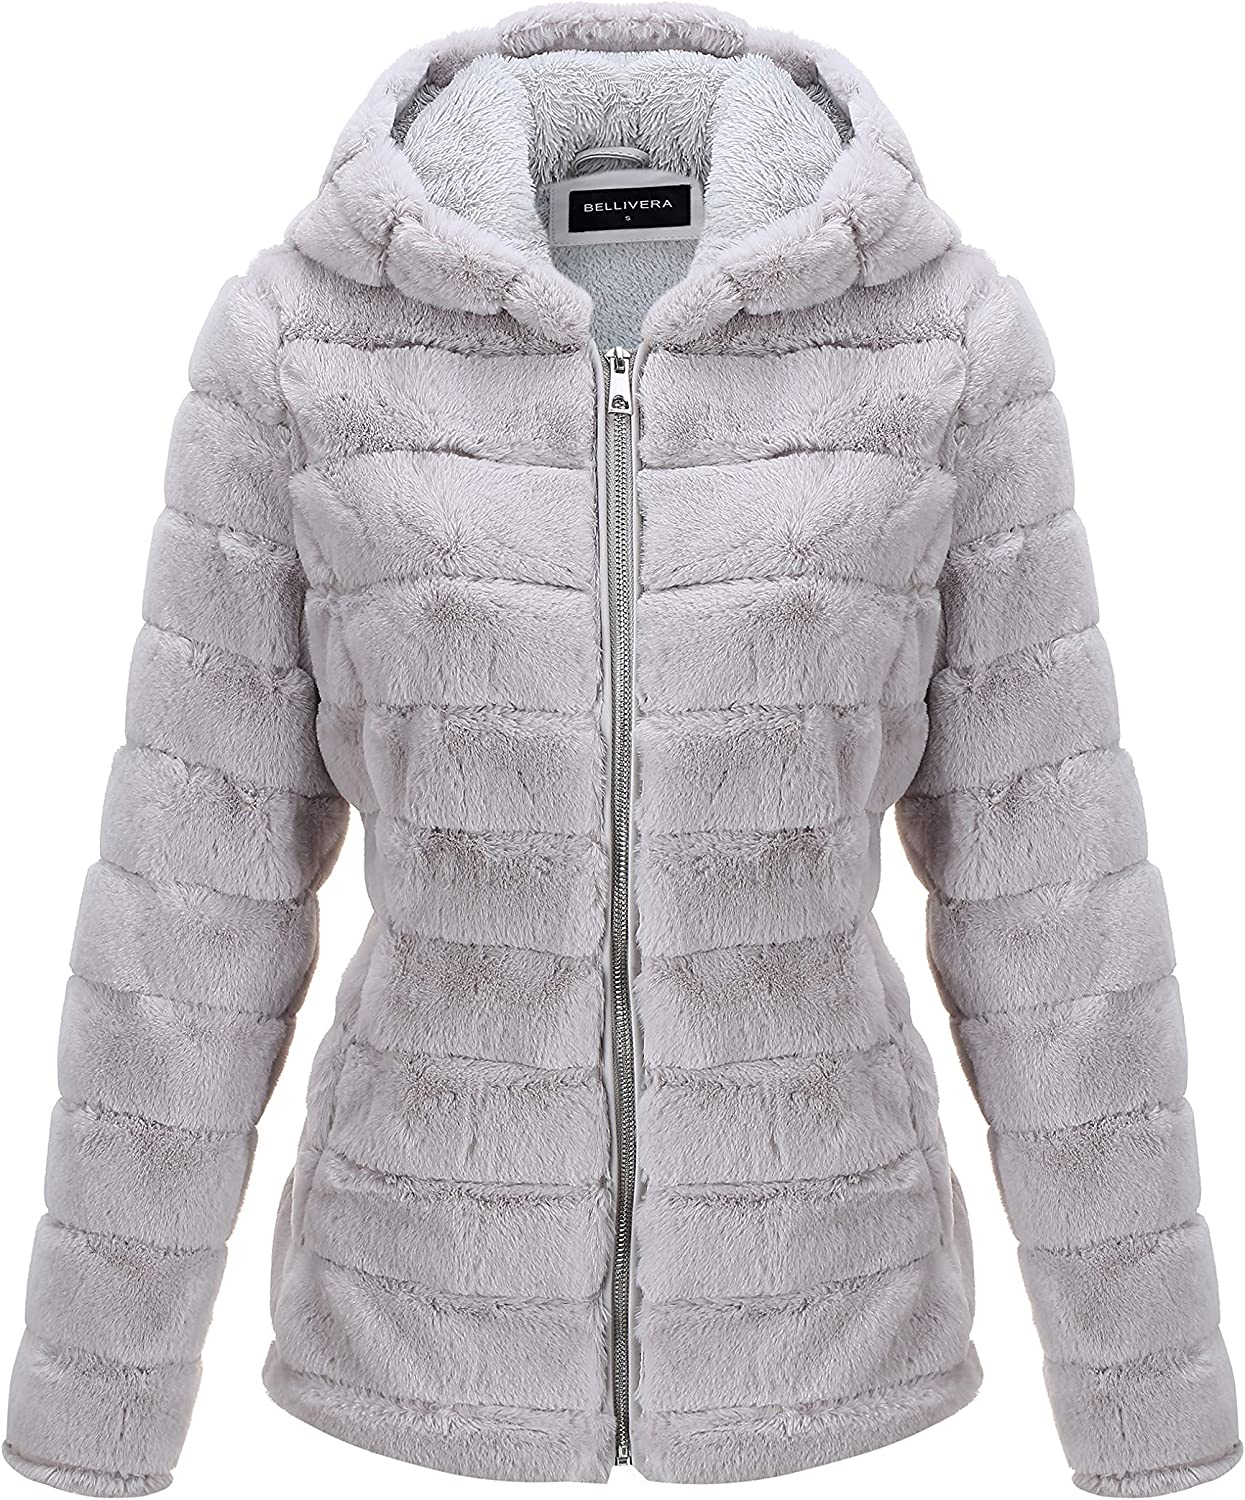 Bellivera Women's Faux Shearling Shaggy Coat,Fashion Long Sleeve Zip Up Jacket Hooded for Spring Fall and Winter